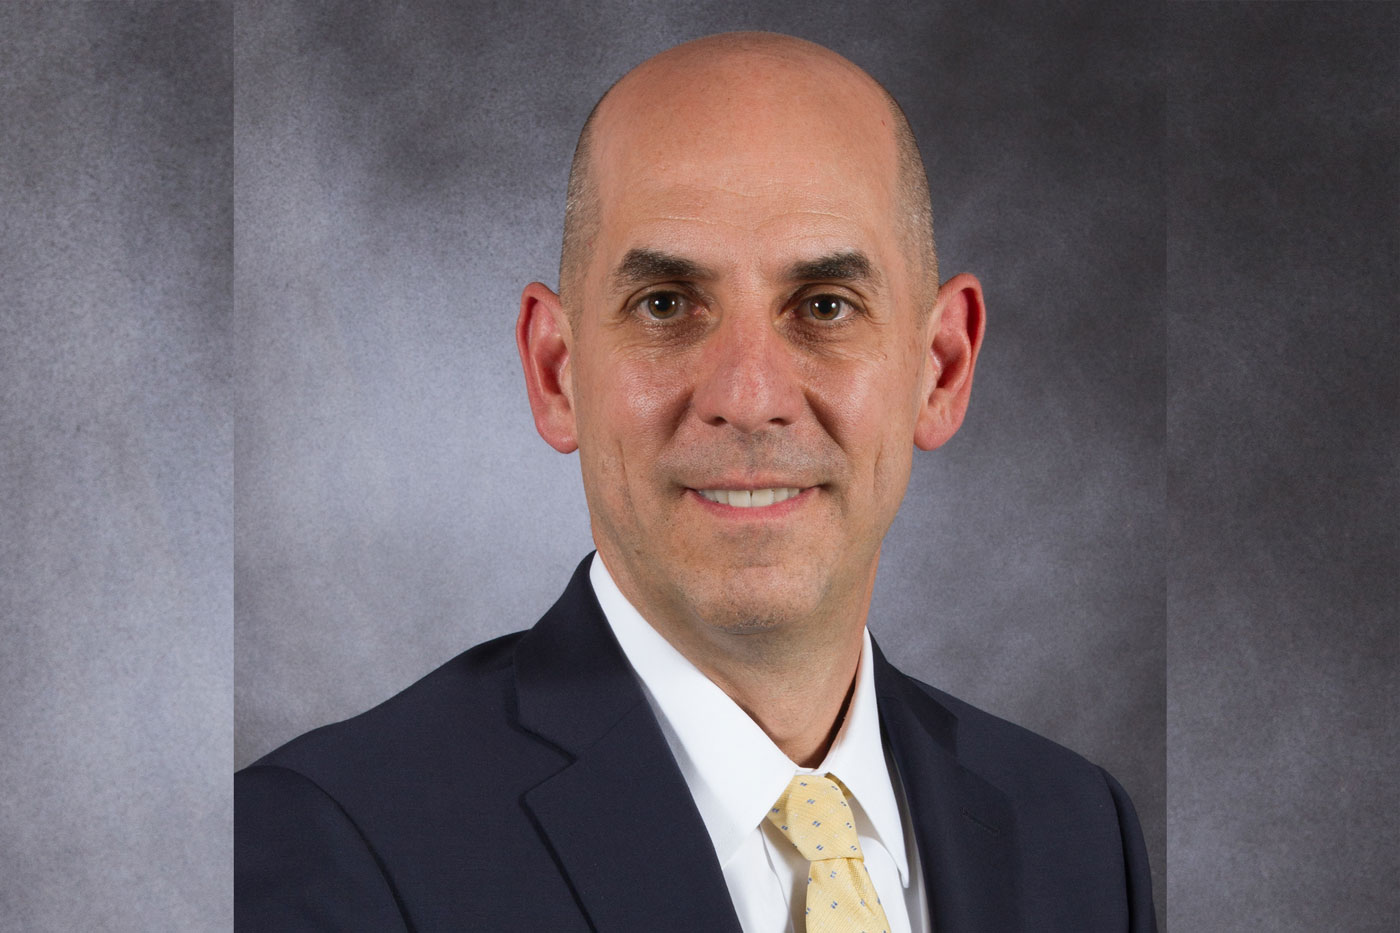 A message from RBT CPAs, LLP Managing Partner Michael Turturro